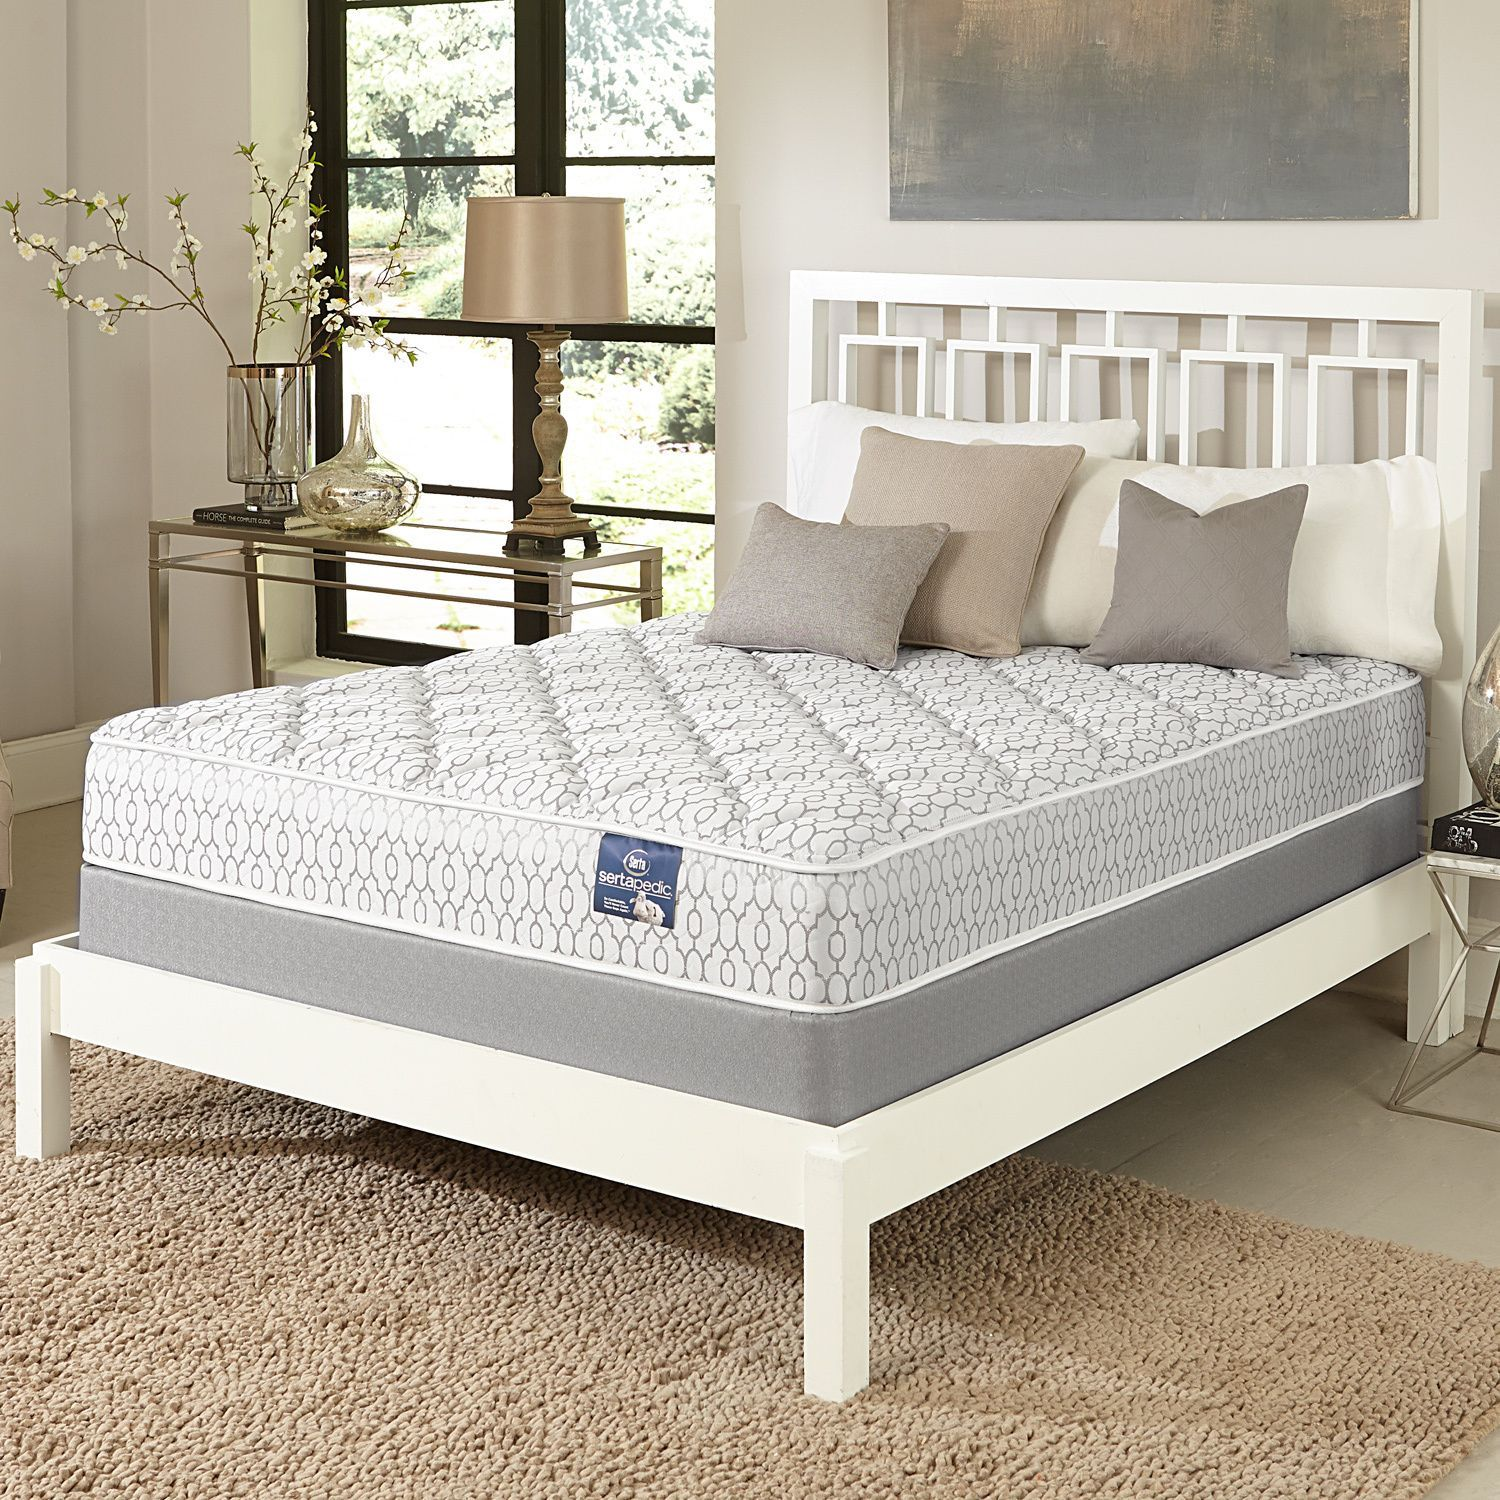 serta gleam plush twin xl size mattress set twin xl mattress with 9